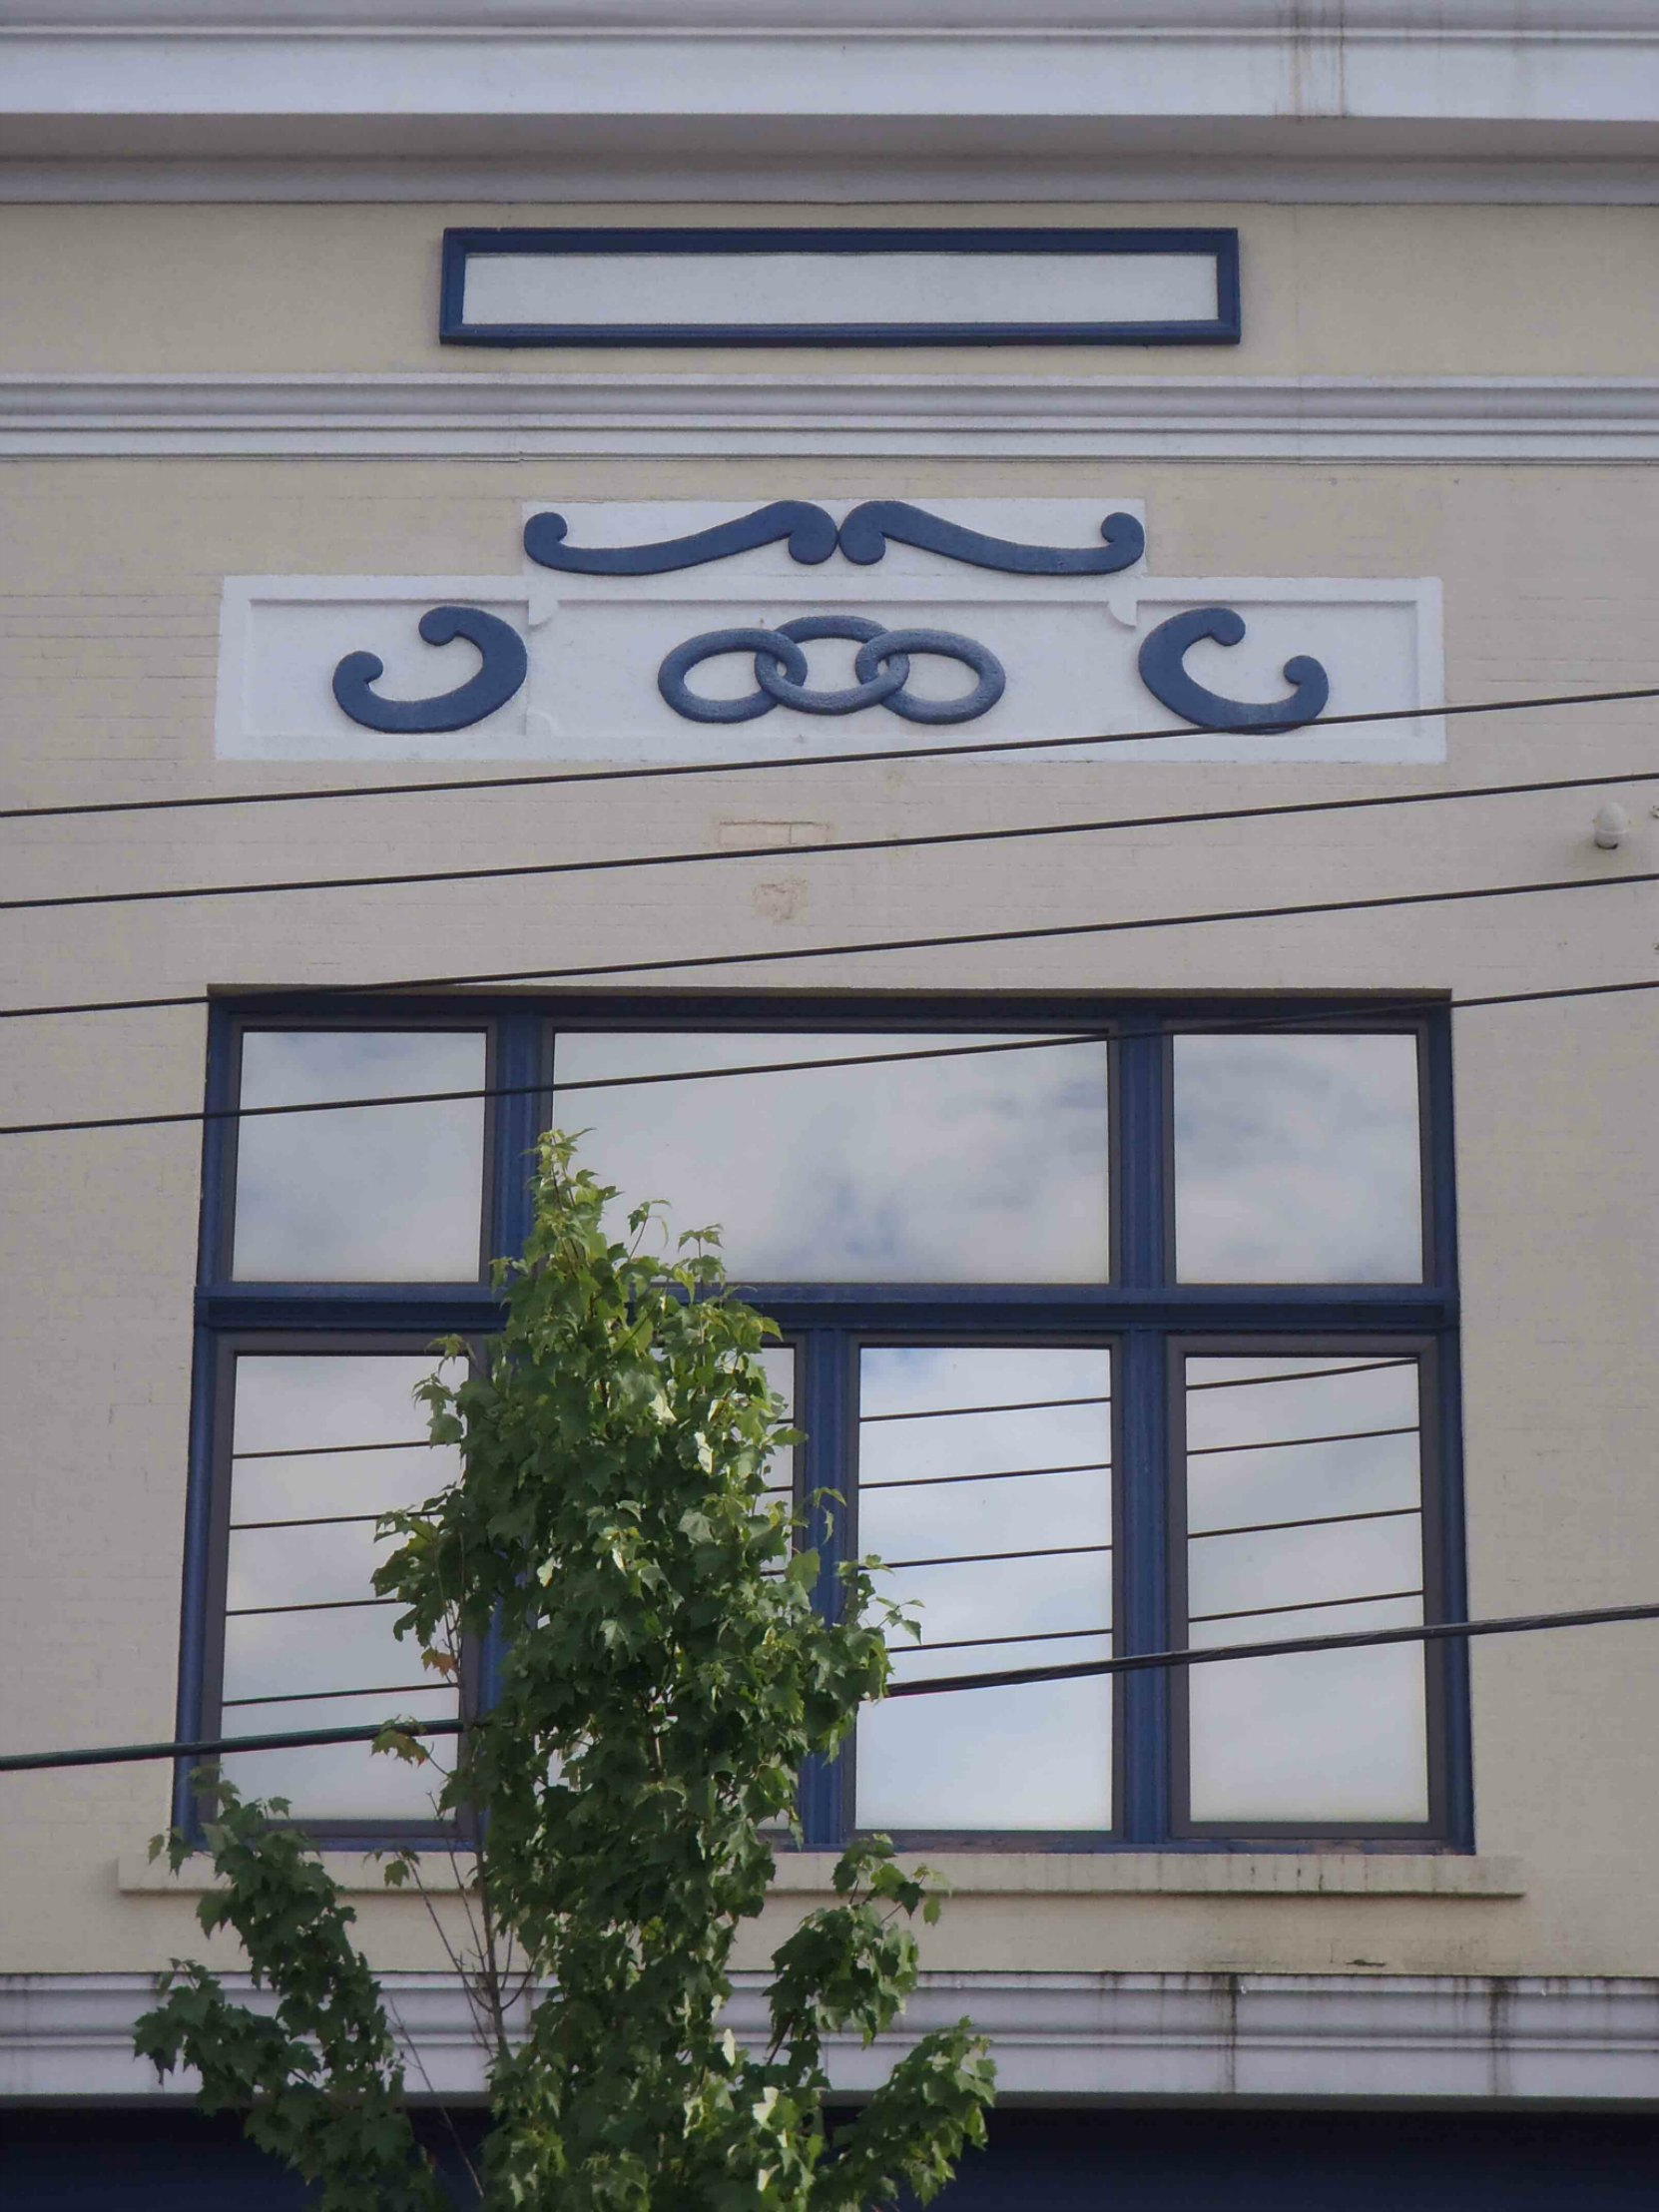 Independent Order of Odd Fellows (I.O.O.F) symbol on Whitome Building exterior